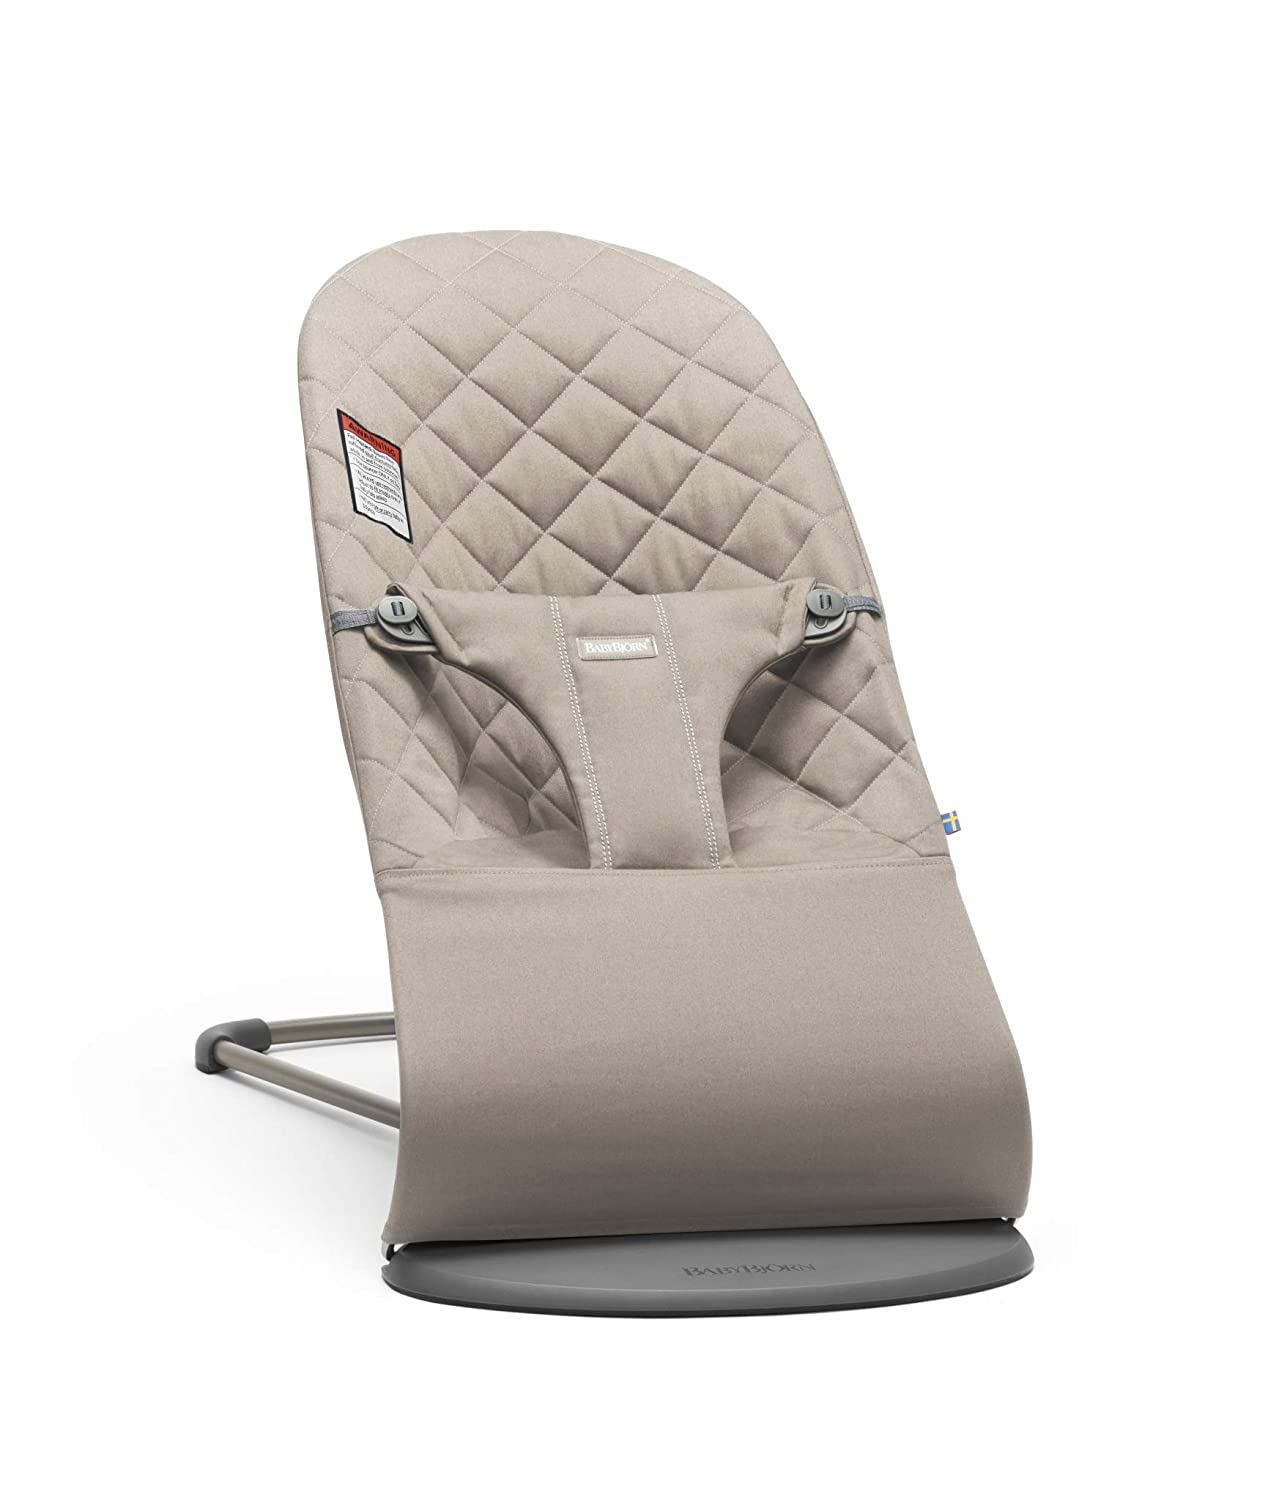 BabyBjörn Bouncer Bliss, Sand Gray, Cotton (006017US)